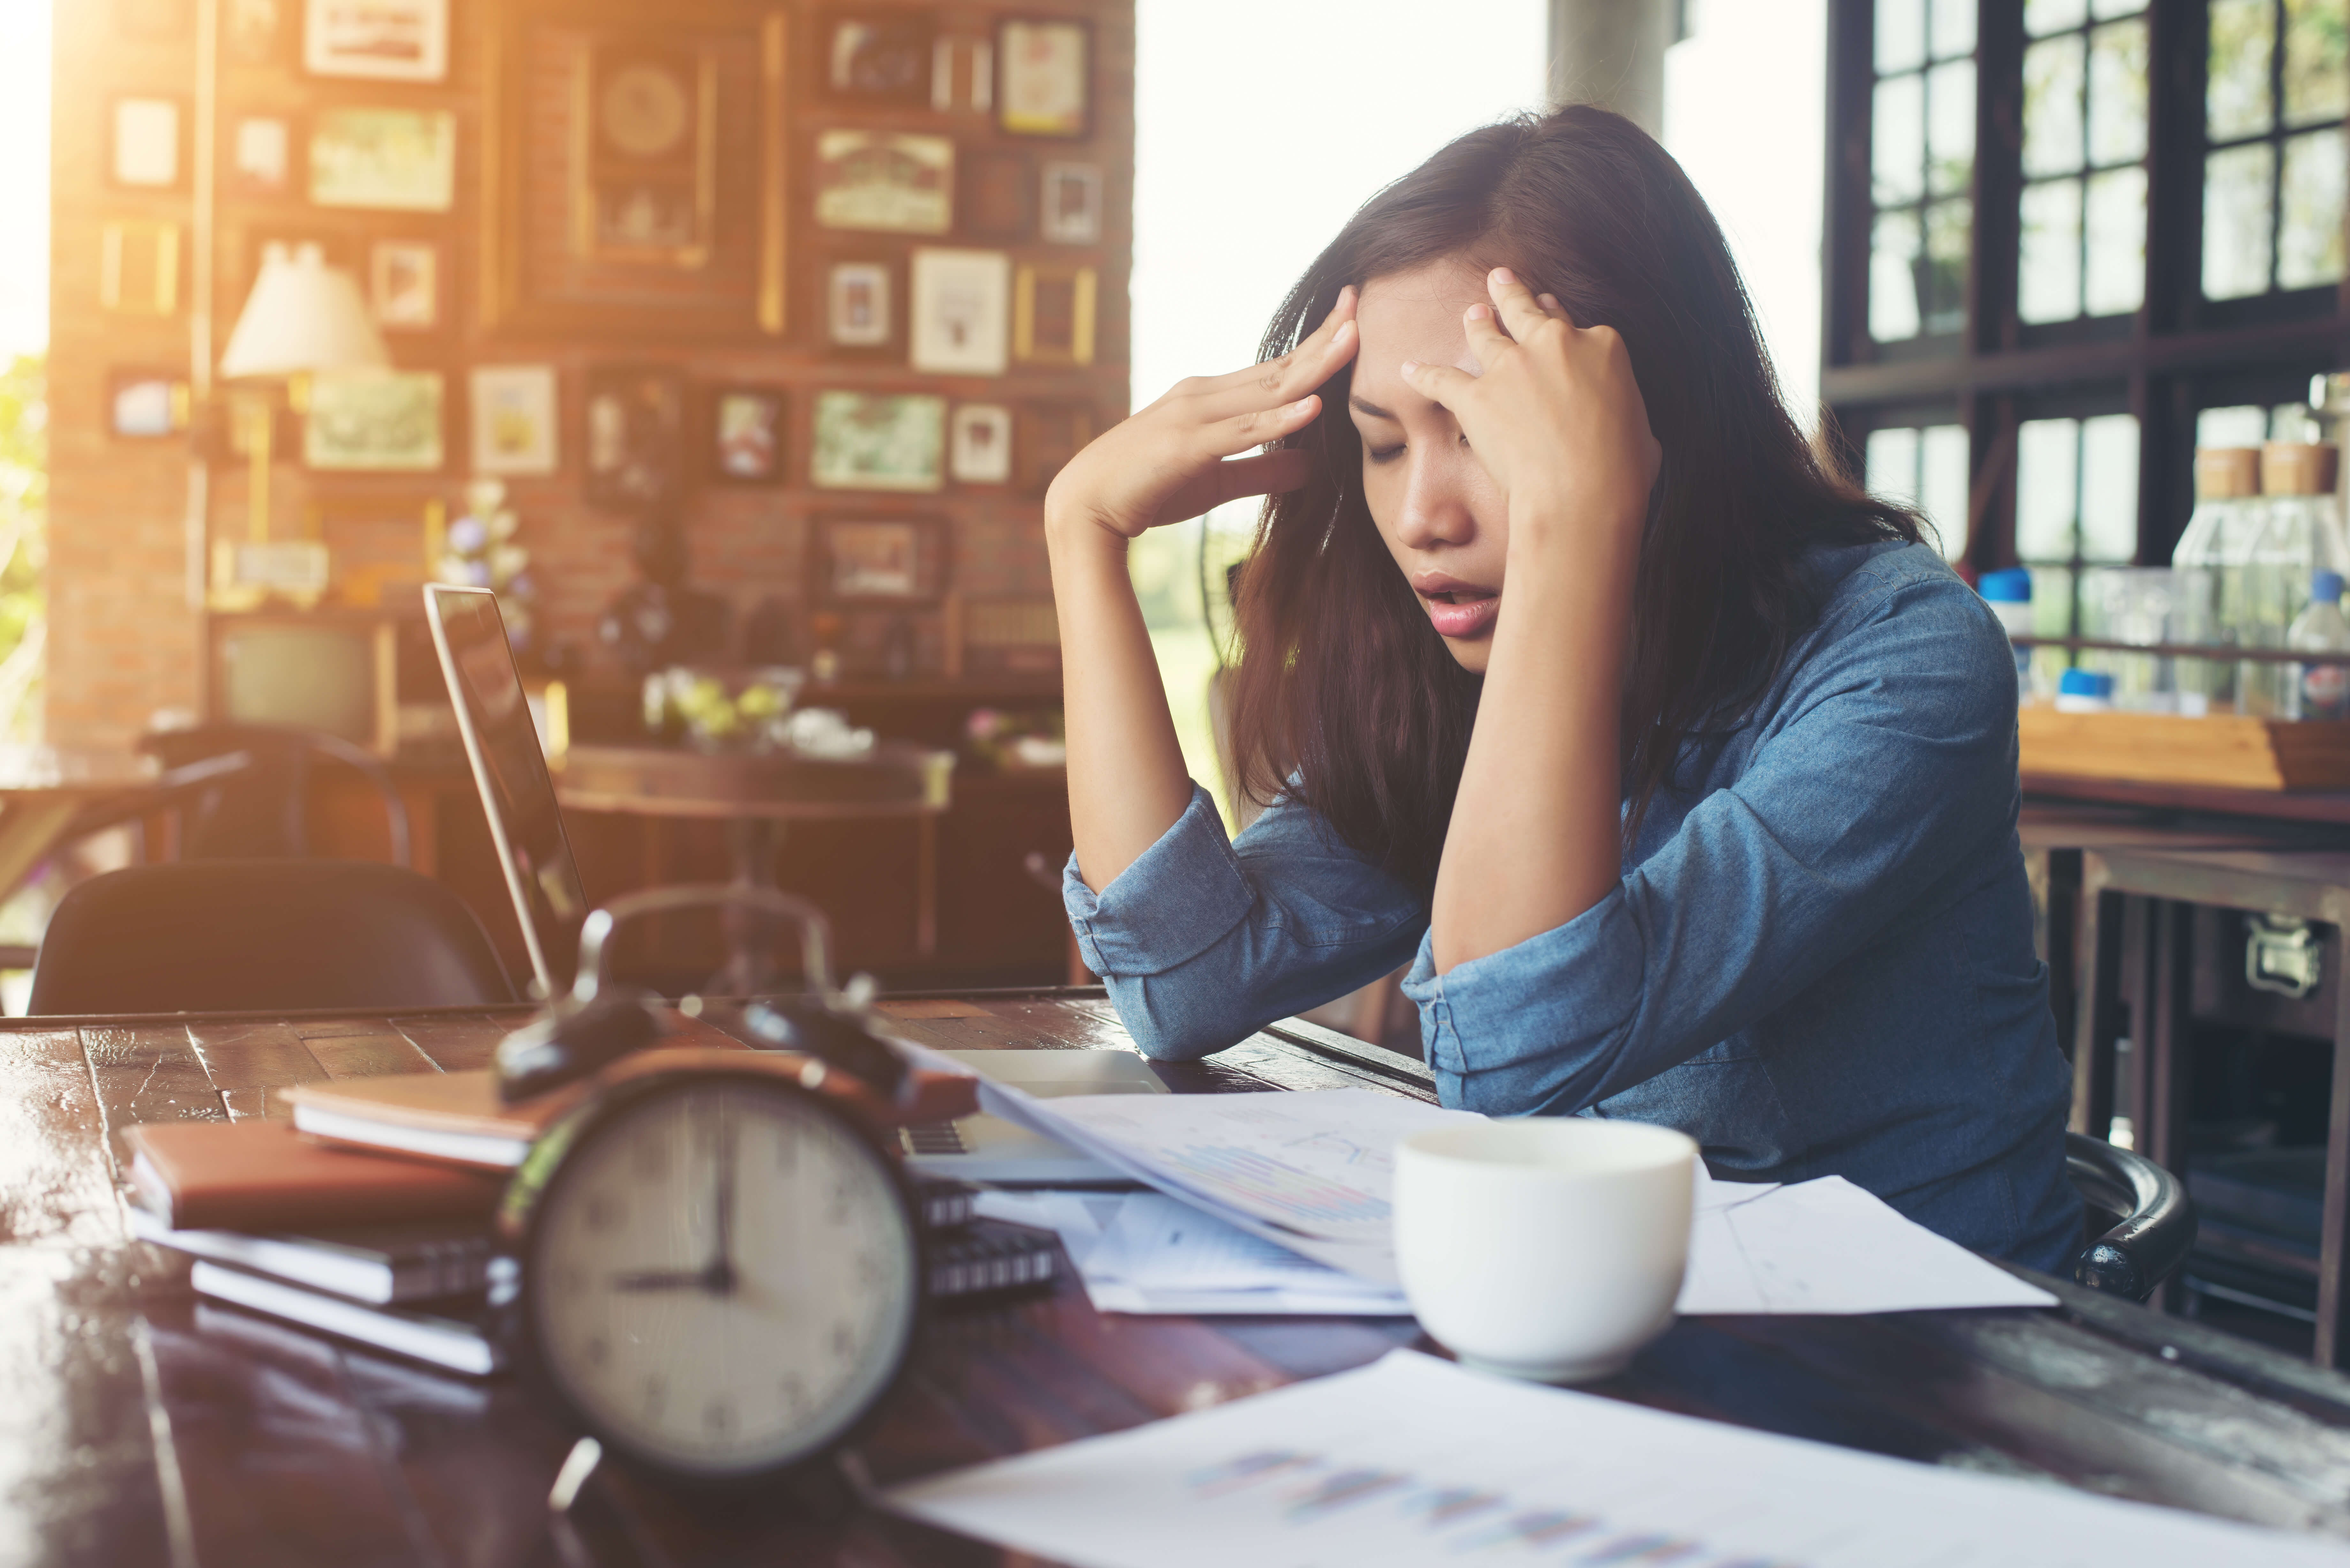 Exasperated woman pays bills at her desk. Don't let your credit score overwhelm you, rebuild your credit with Blackwood Credit.